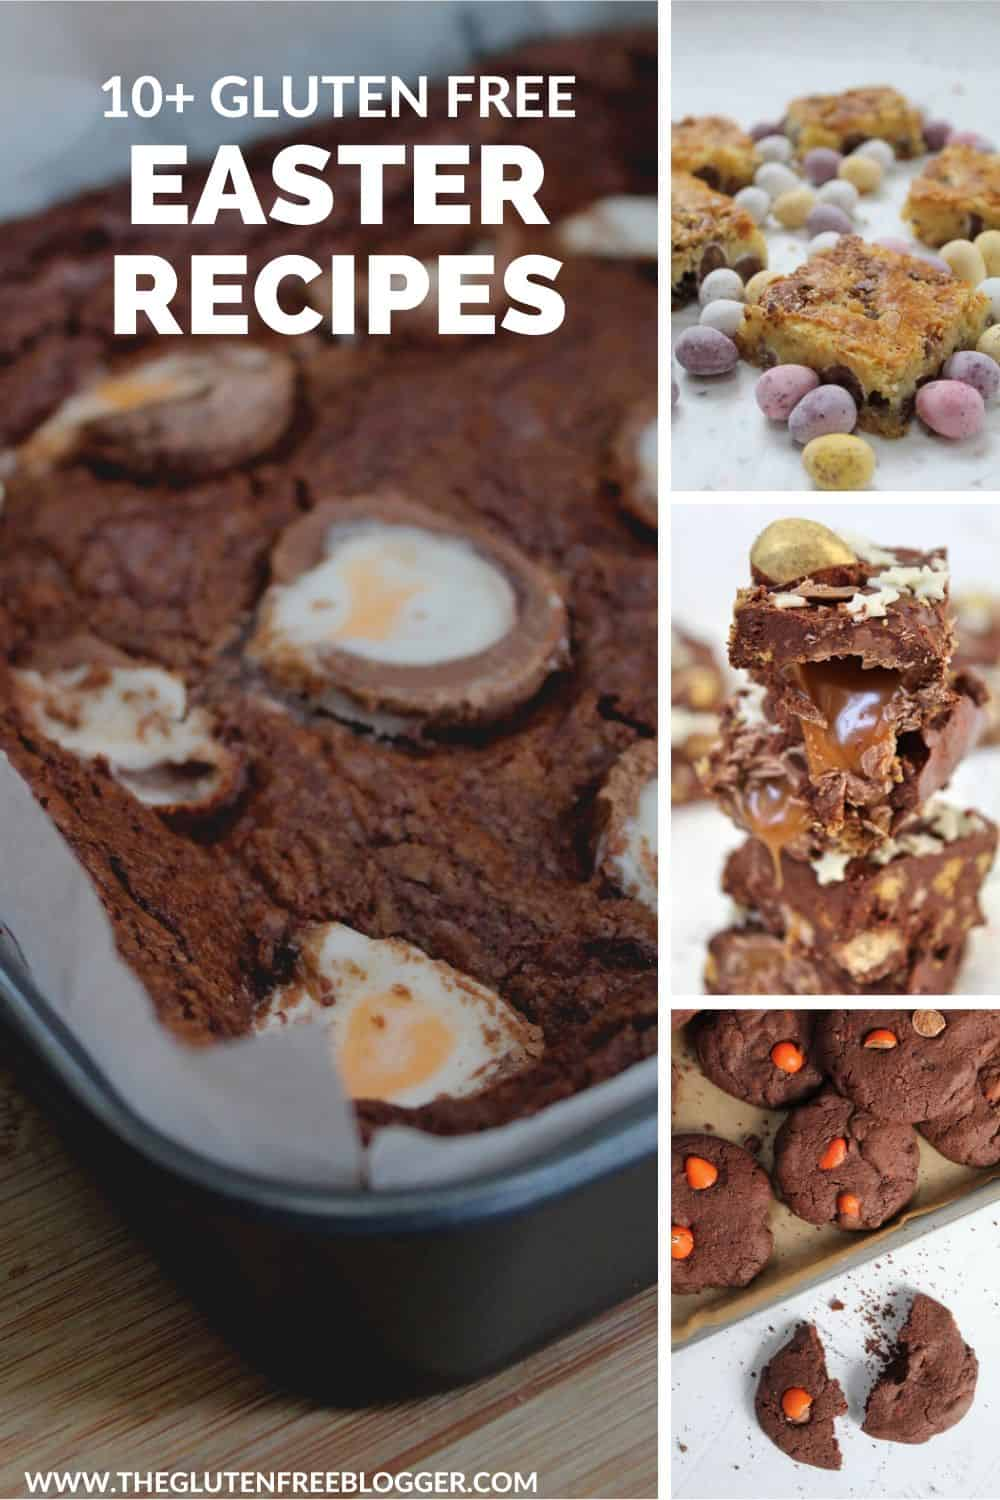 gluten free easter recipes cakes bakes creme egg brownies mini eggs holiday recipes cooking with children recipe round-up